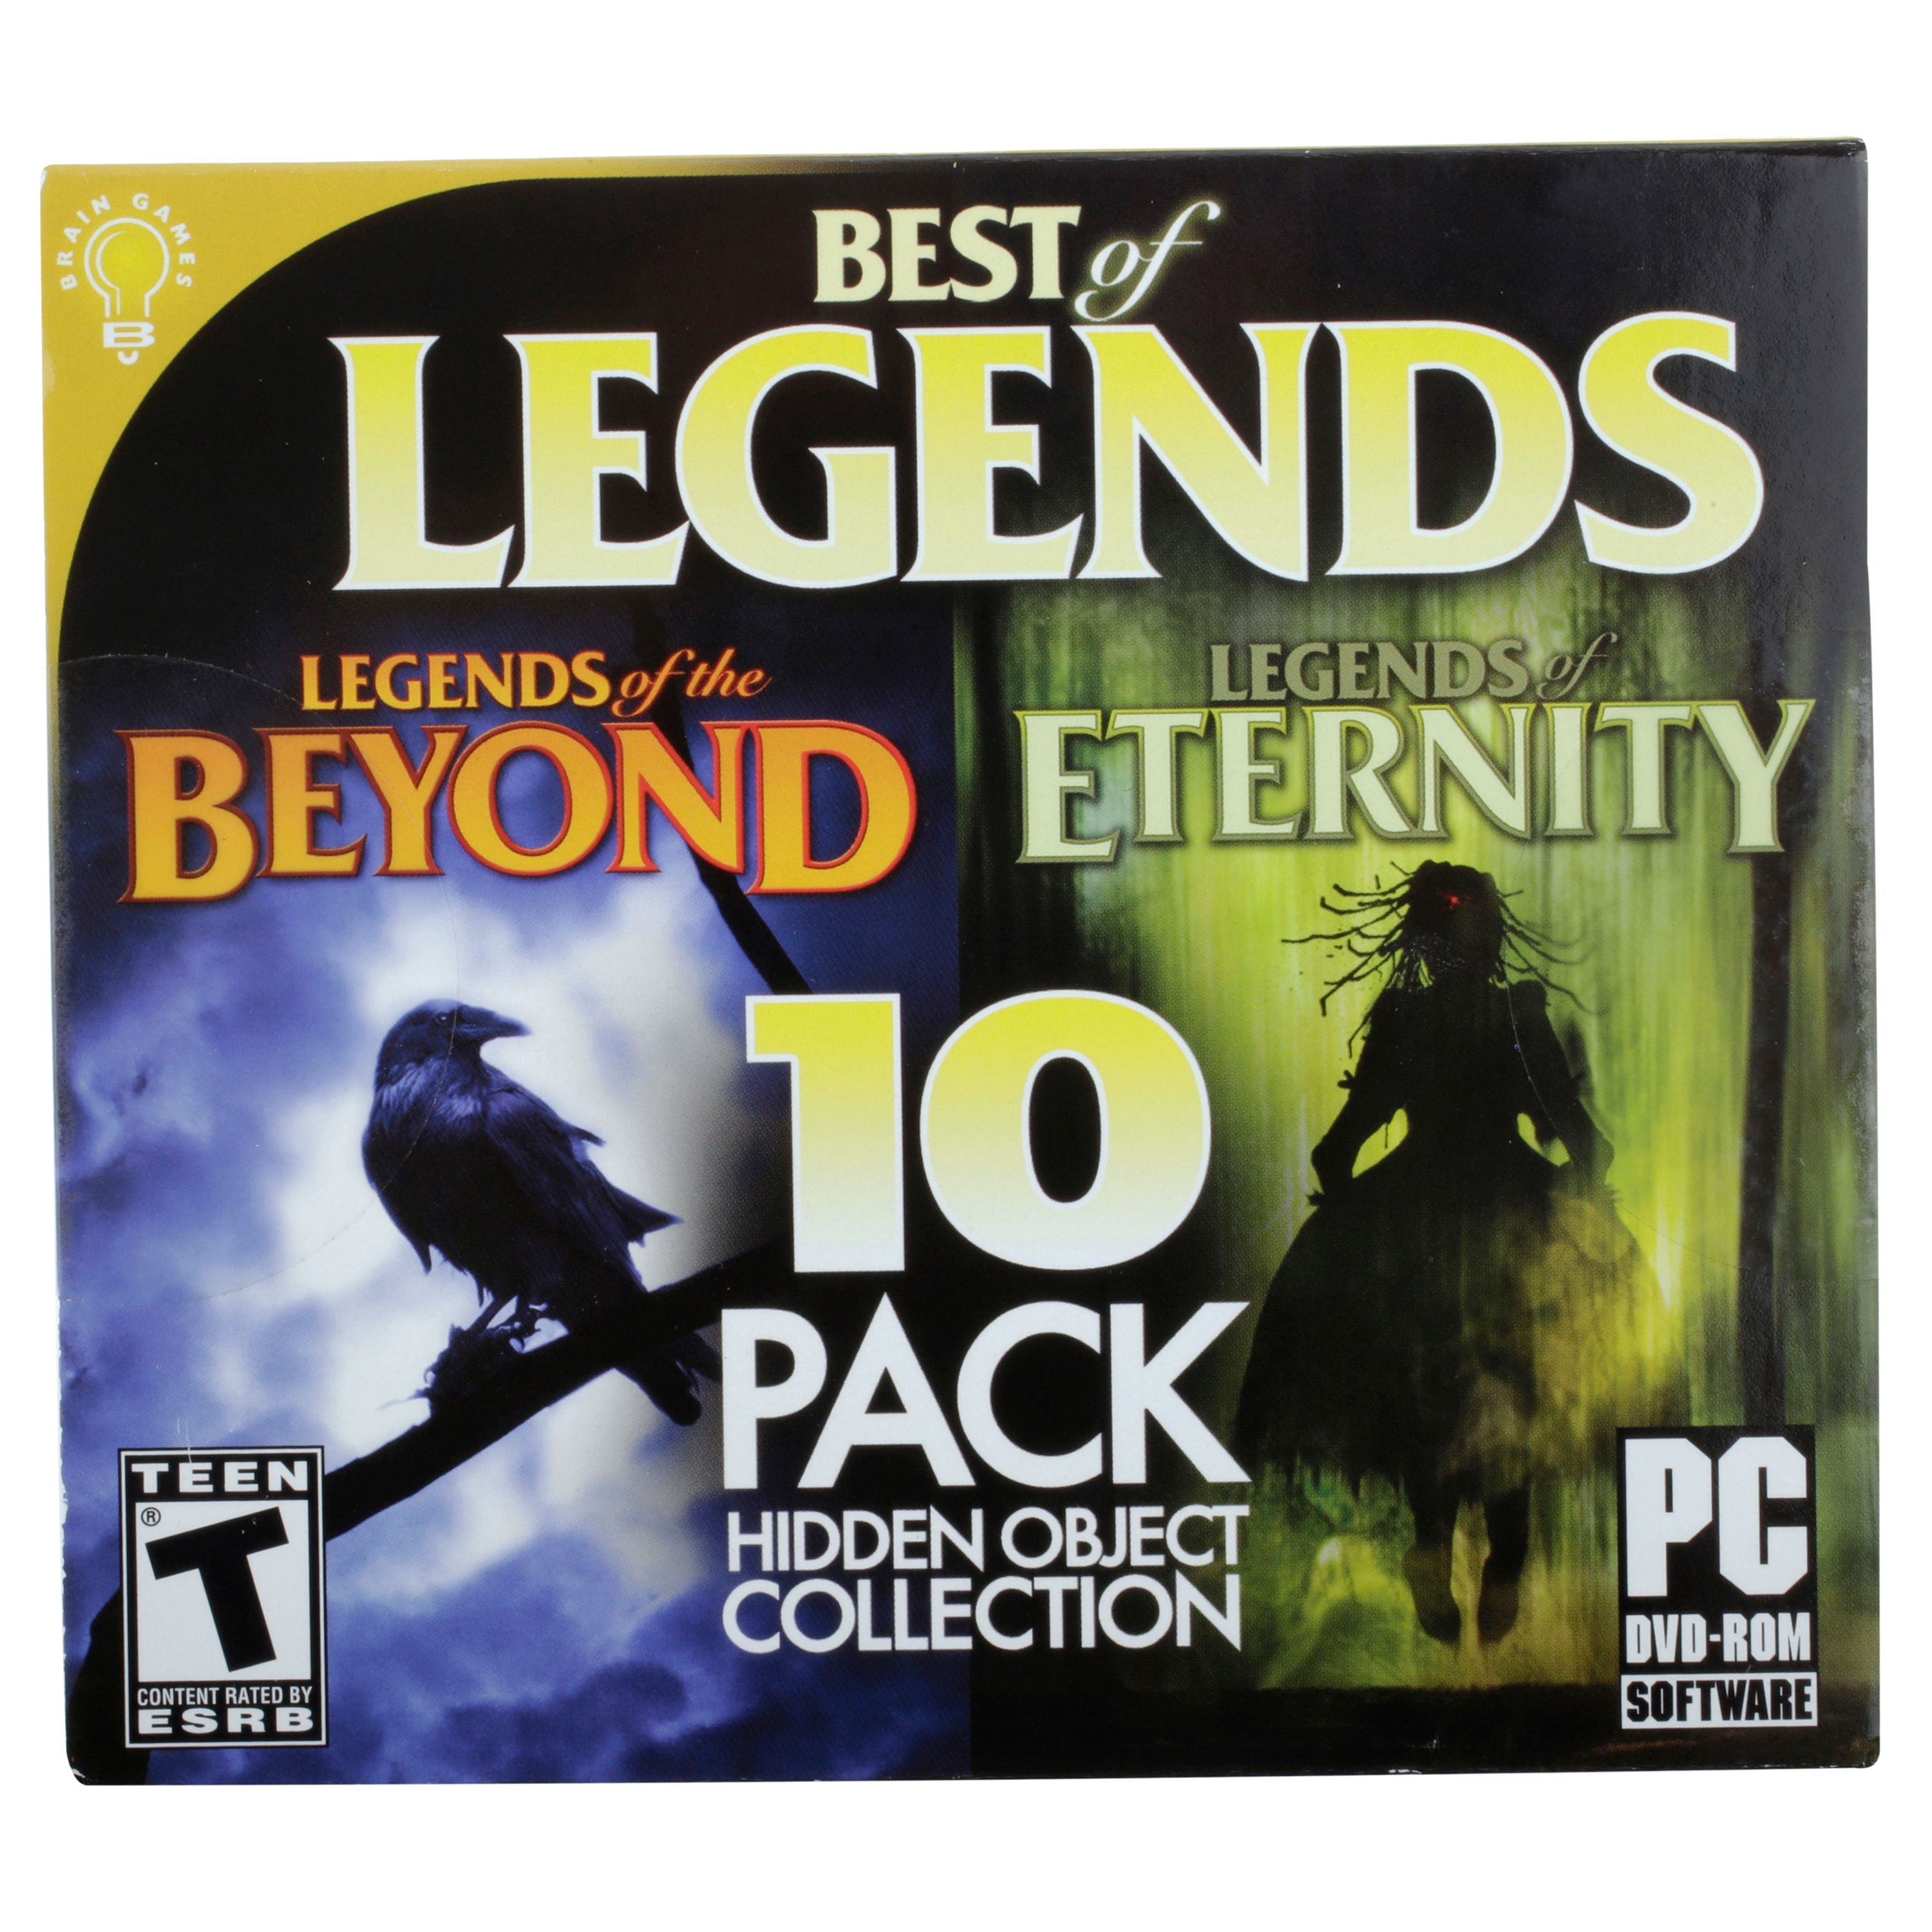 Best Of Legends Pc Dvd From Walmart In Fort Worth Tx Burpy Com